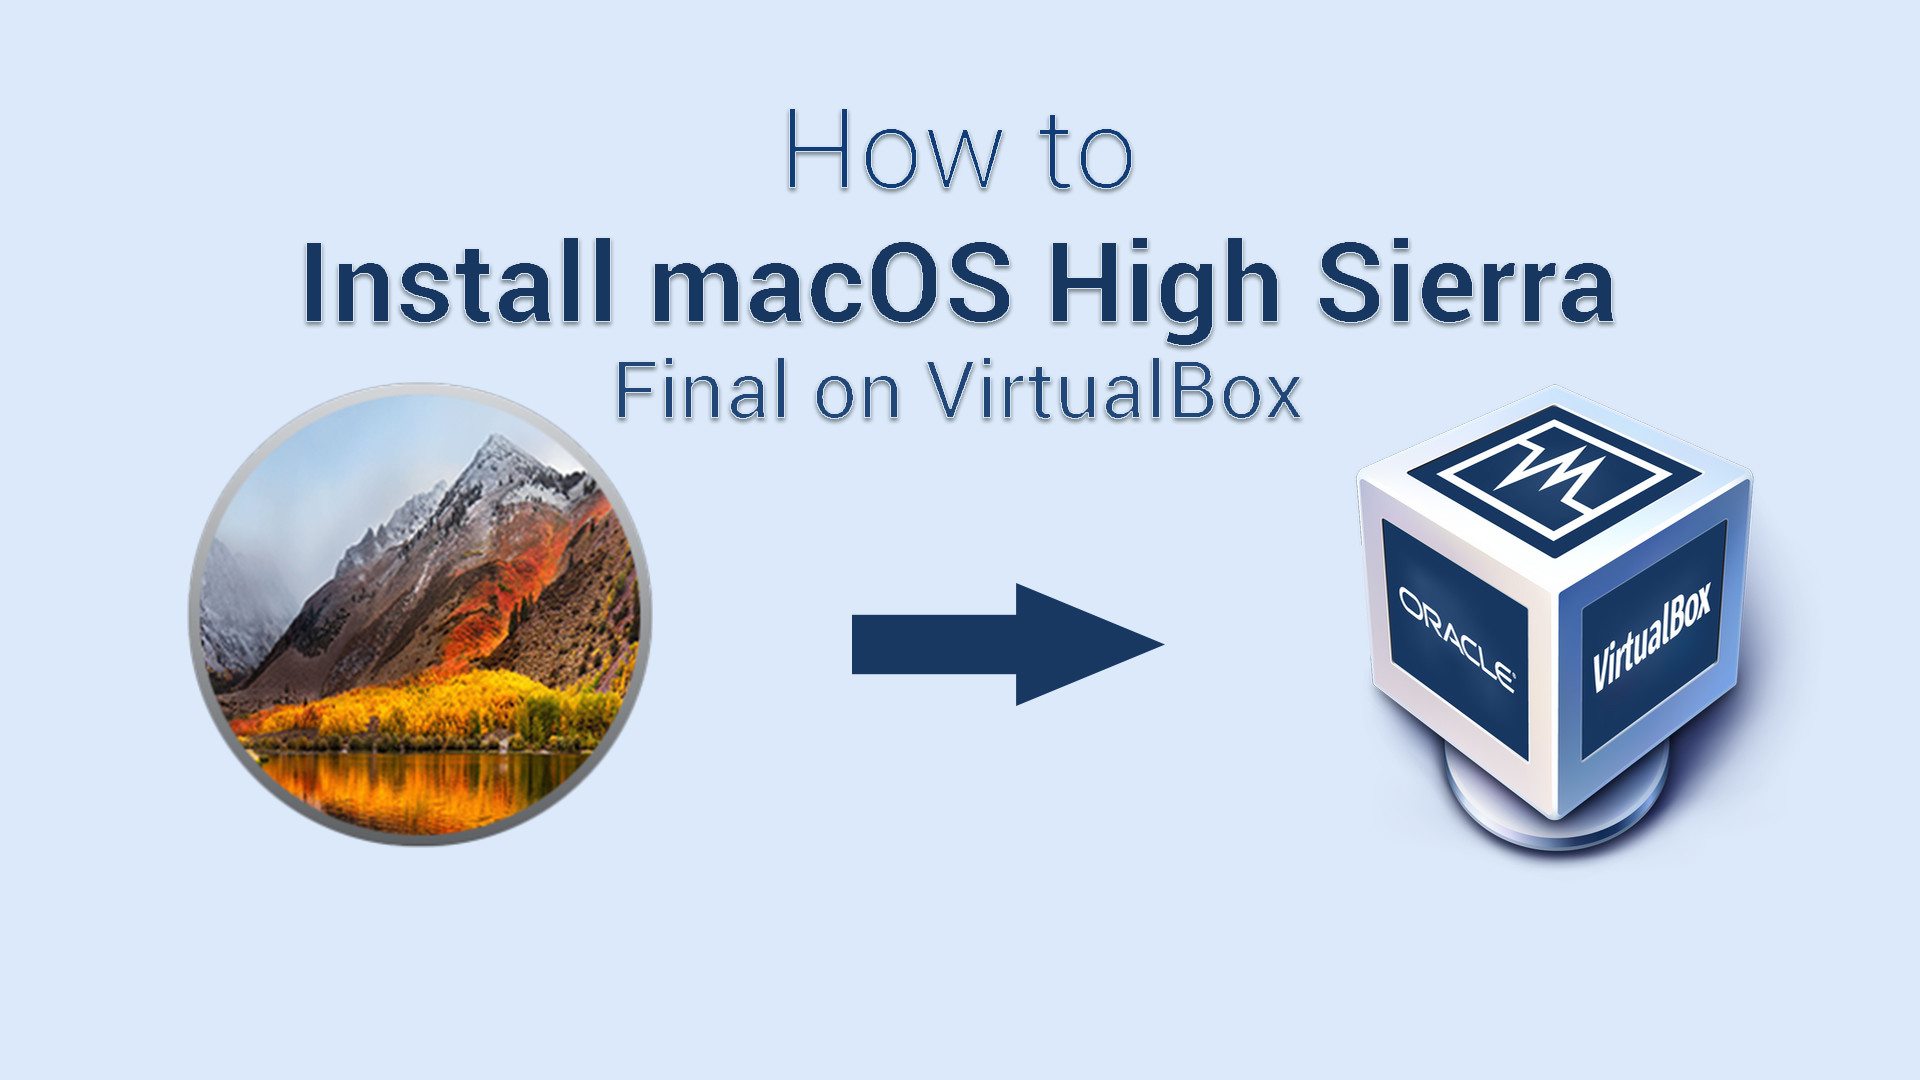 How to Install macOS High Sierra on VirtualBox on Windows 7 8 10 PC